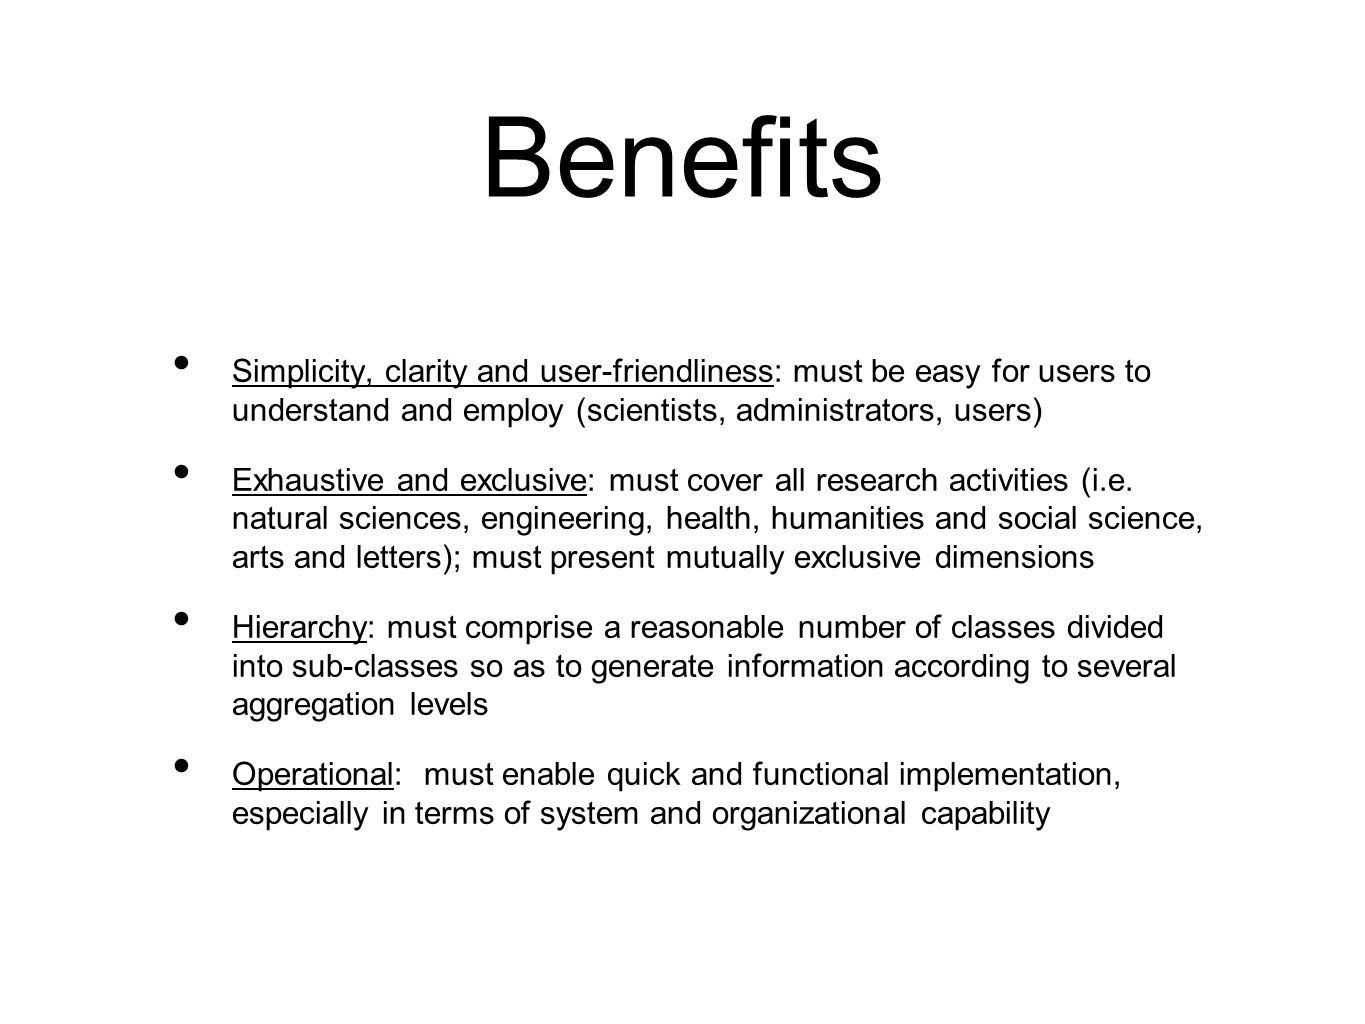 Benefits Simplicity, clarity and user-friendliness: must be easy for users to understand and employ (scientists, administrators, users) Exhaustive and